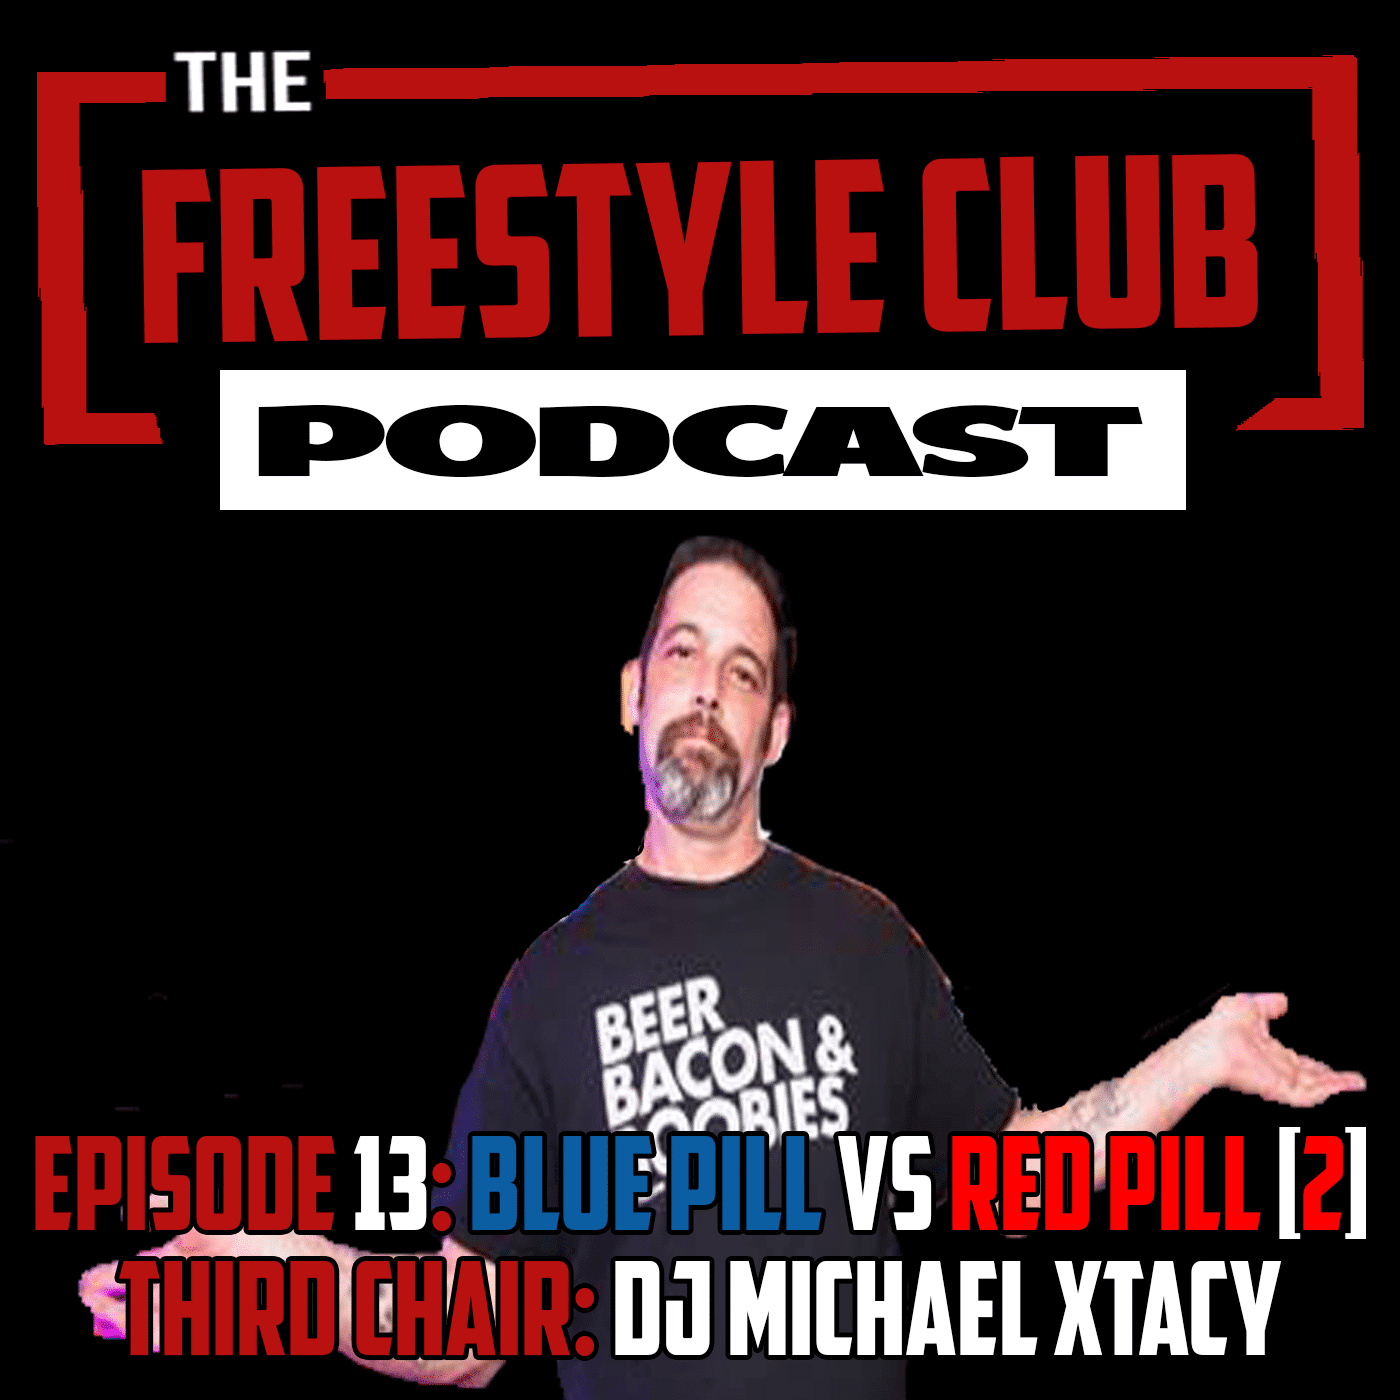 DJ Michael Xtacy - The Freestyle Club